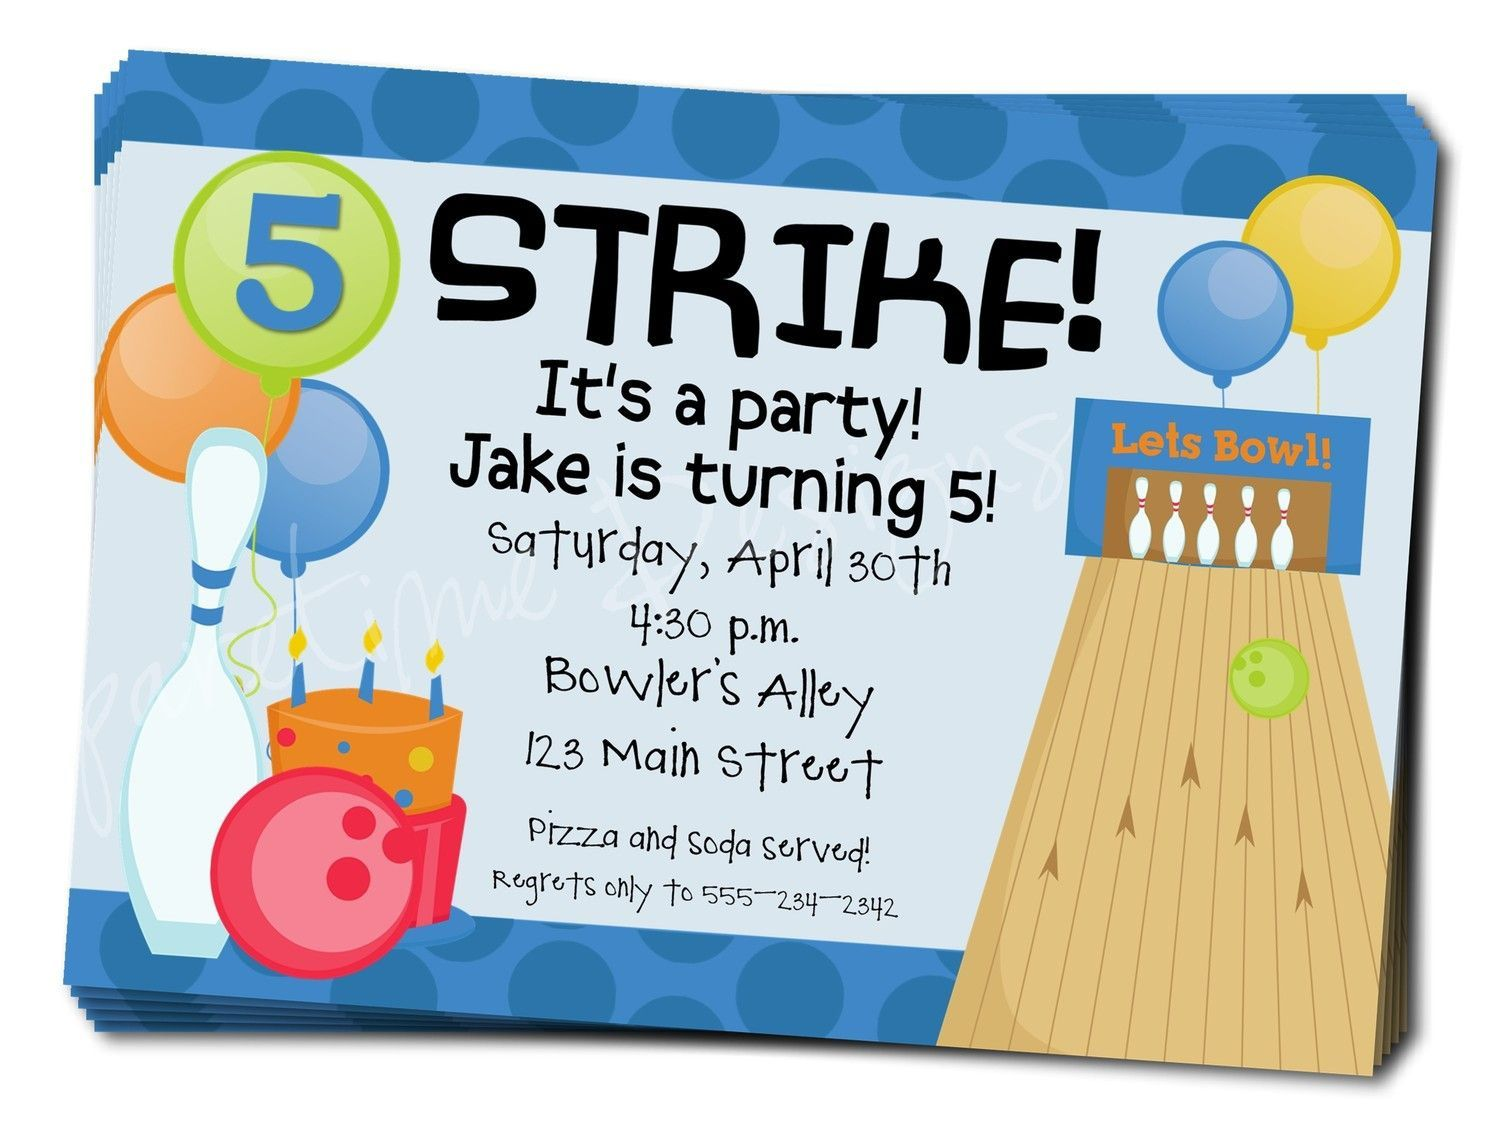 006 Magnificent Bowling Party Invite Printable Free Highest Quality  Birthday InvitationFull